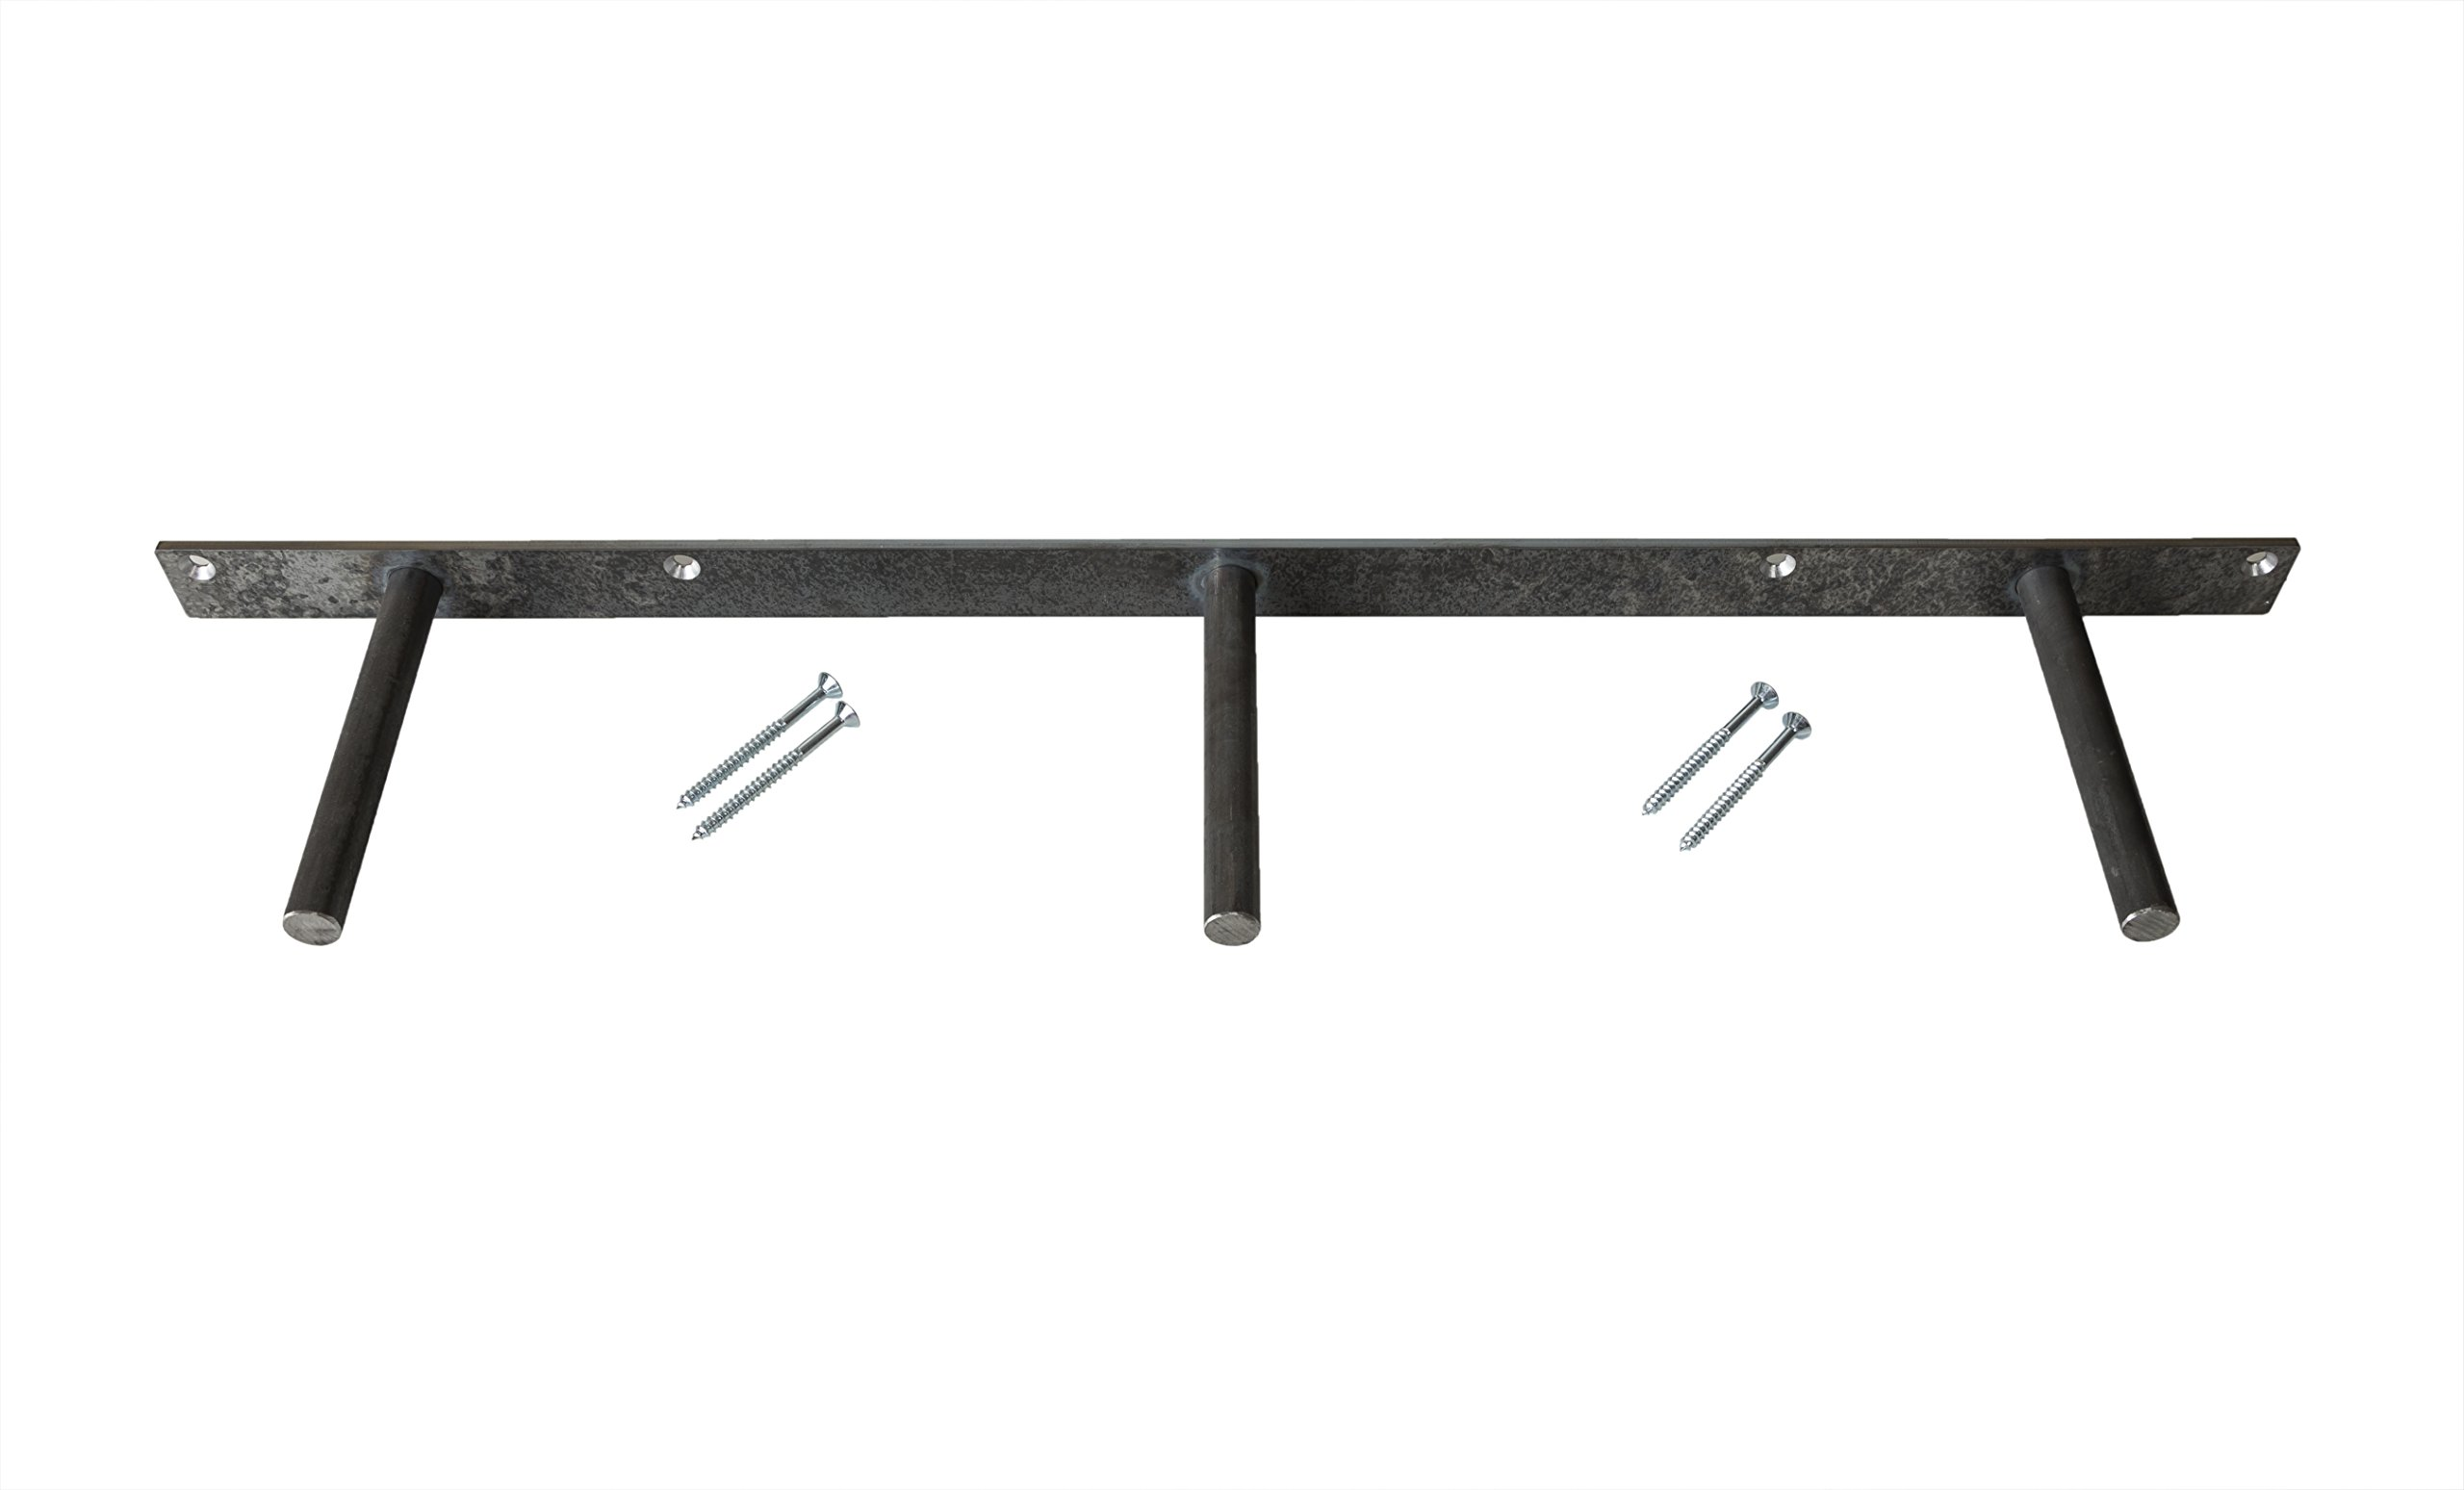 Floating Shelf Bracket - Heavy Duty Solid Steel Mounting Support (32'') Made in The USA by del Hutson Designs